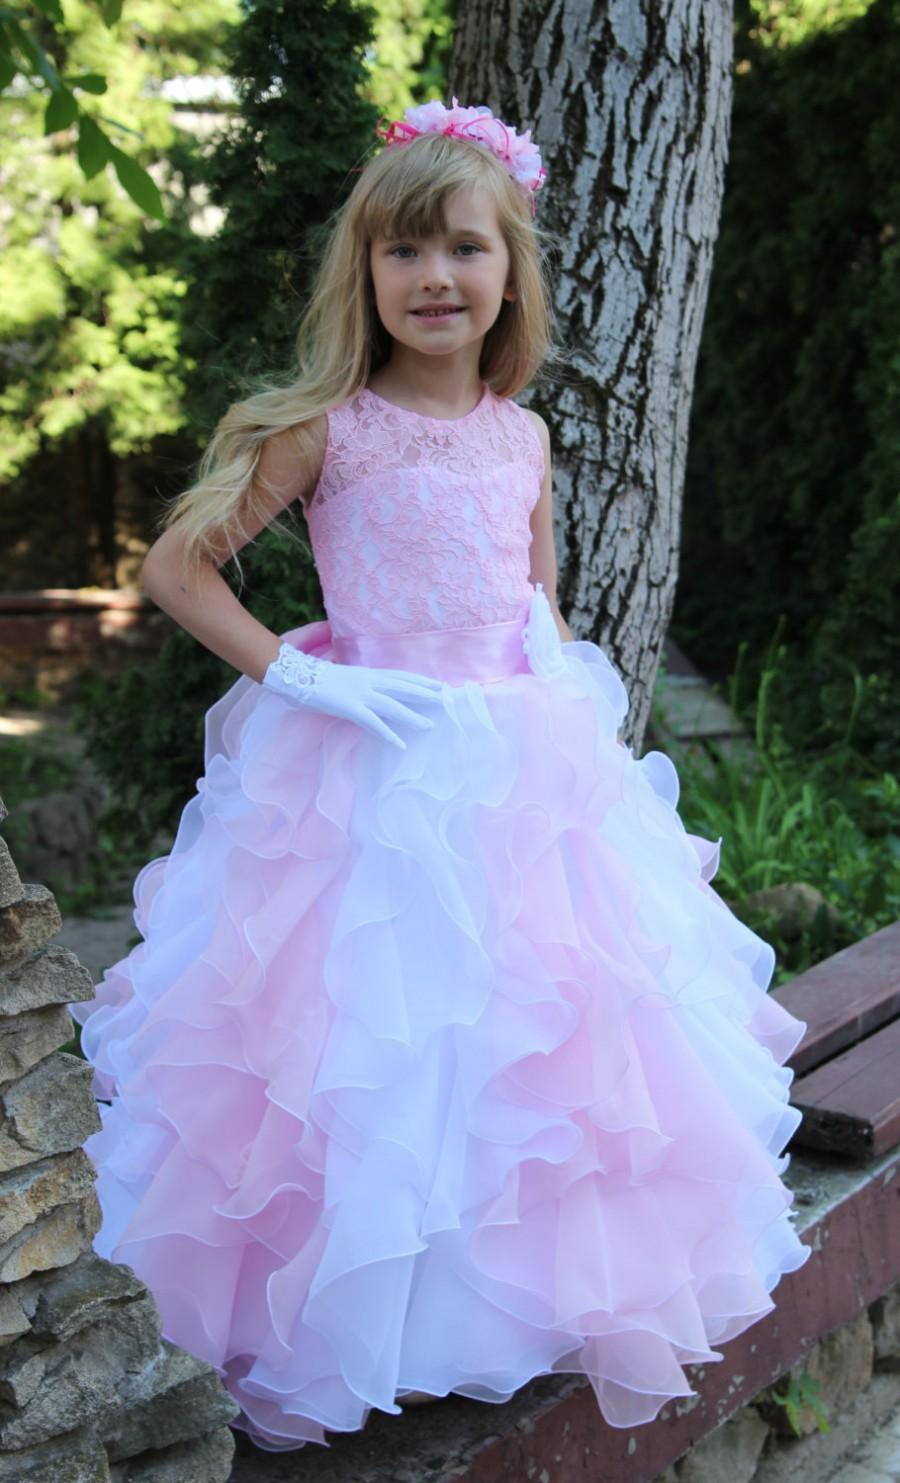 Chiffon Flower Girl Dress Birthday Wedding Party Holiday